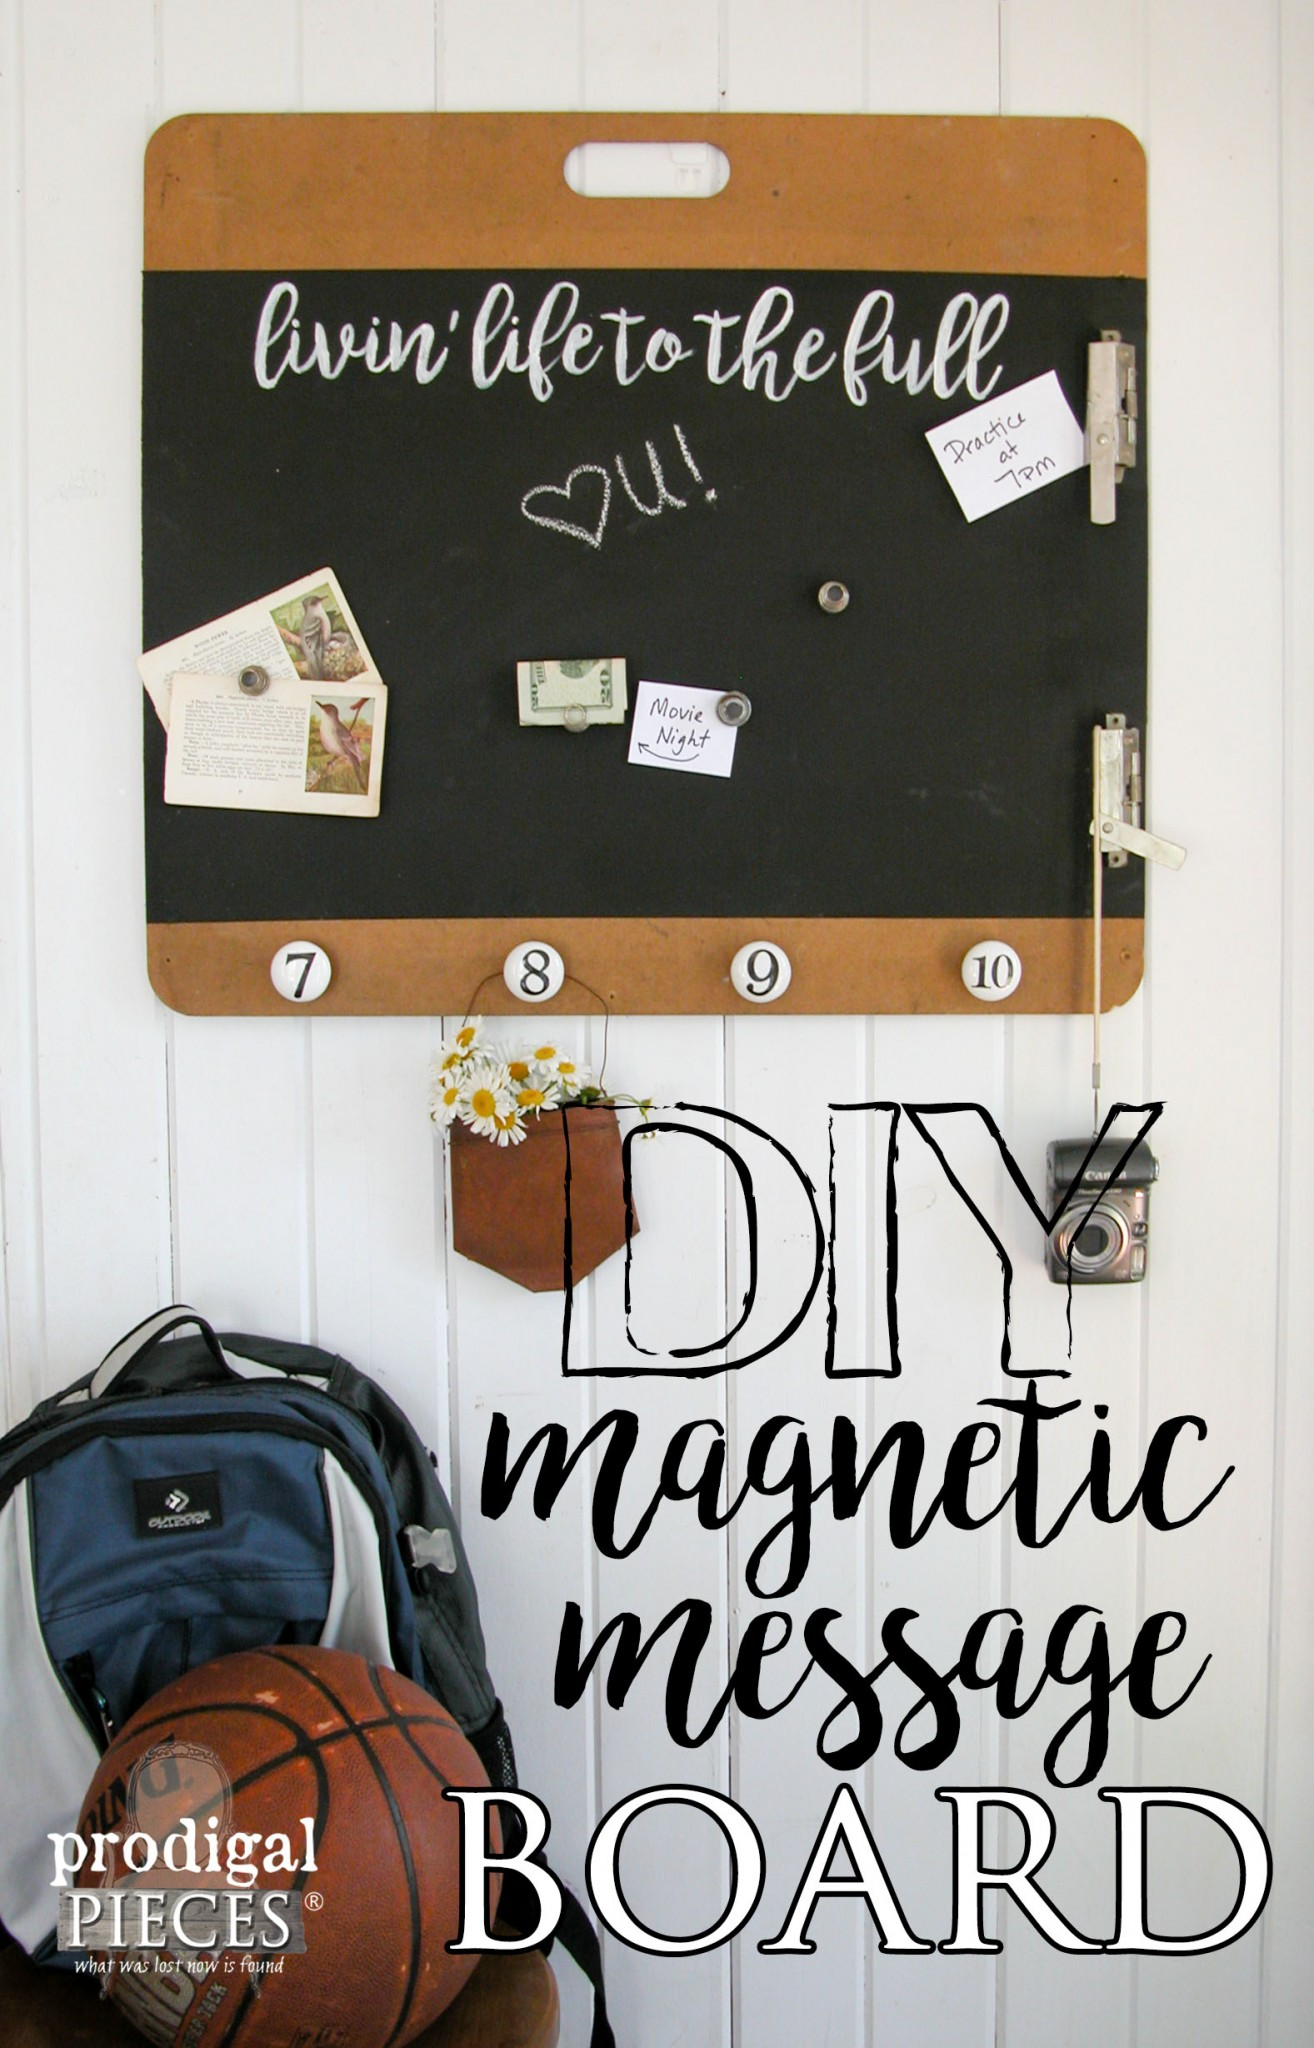 How to Create Your Own DIY Magentic Message Board Tutorial by Prodigal Pieces | www.prodigalpieces.com